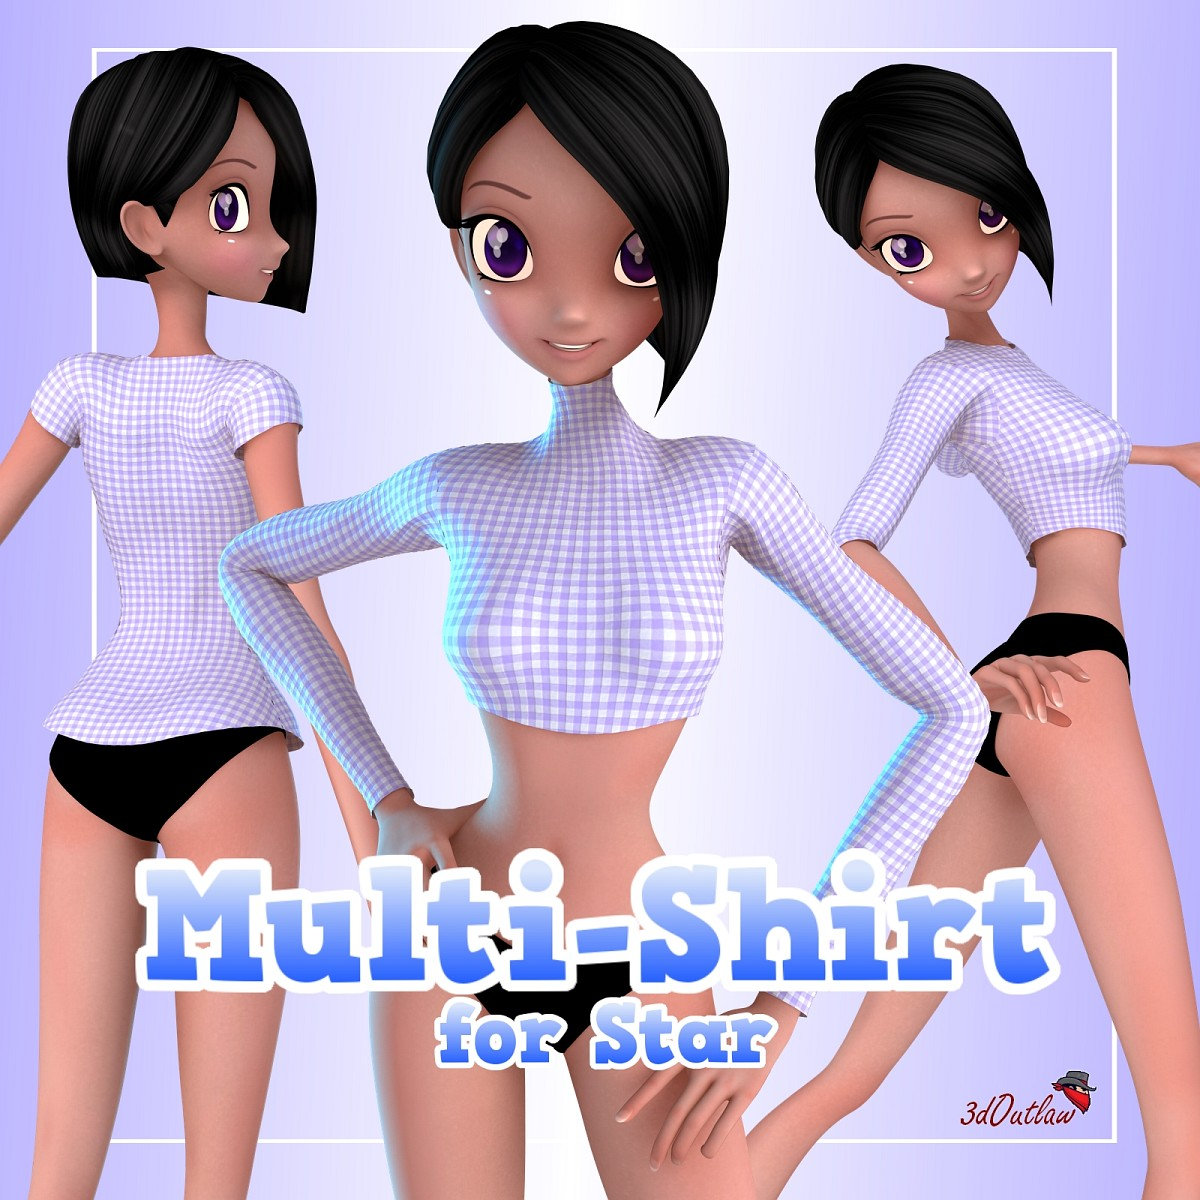 Multi-Shirt for Star by 3doutlaw